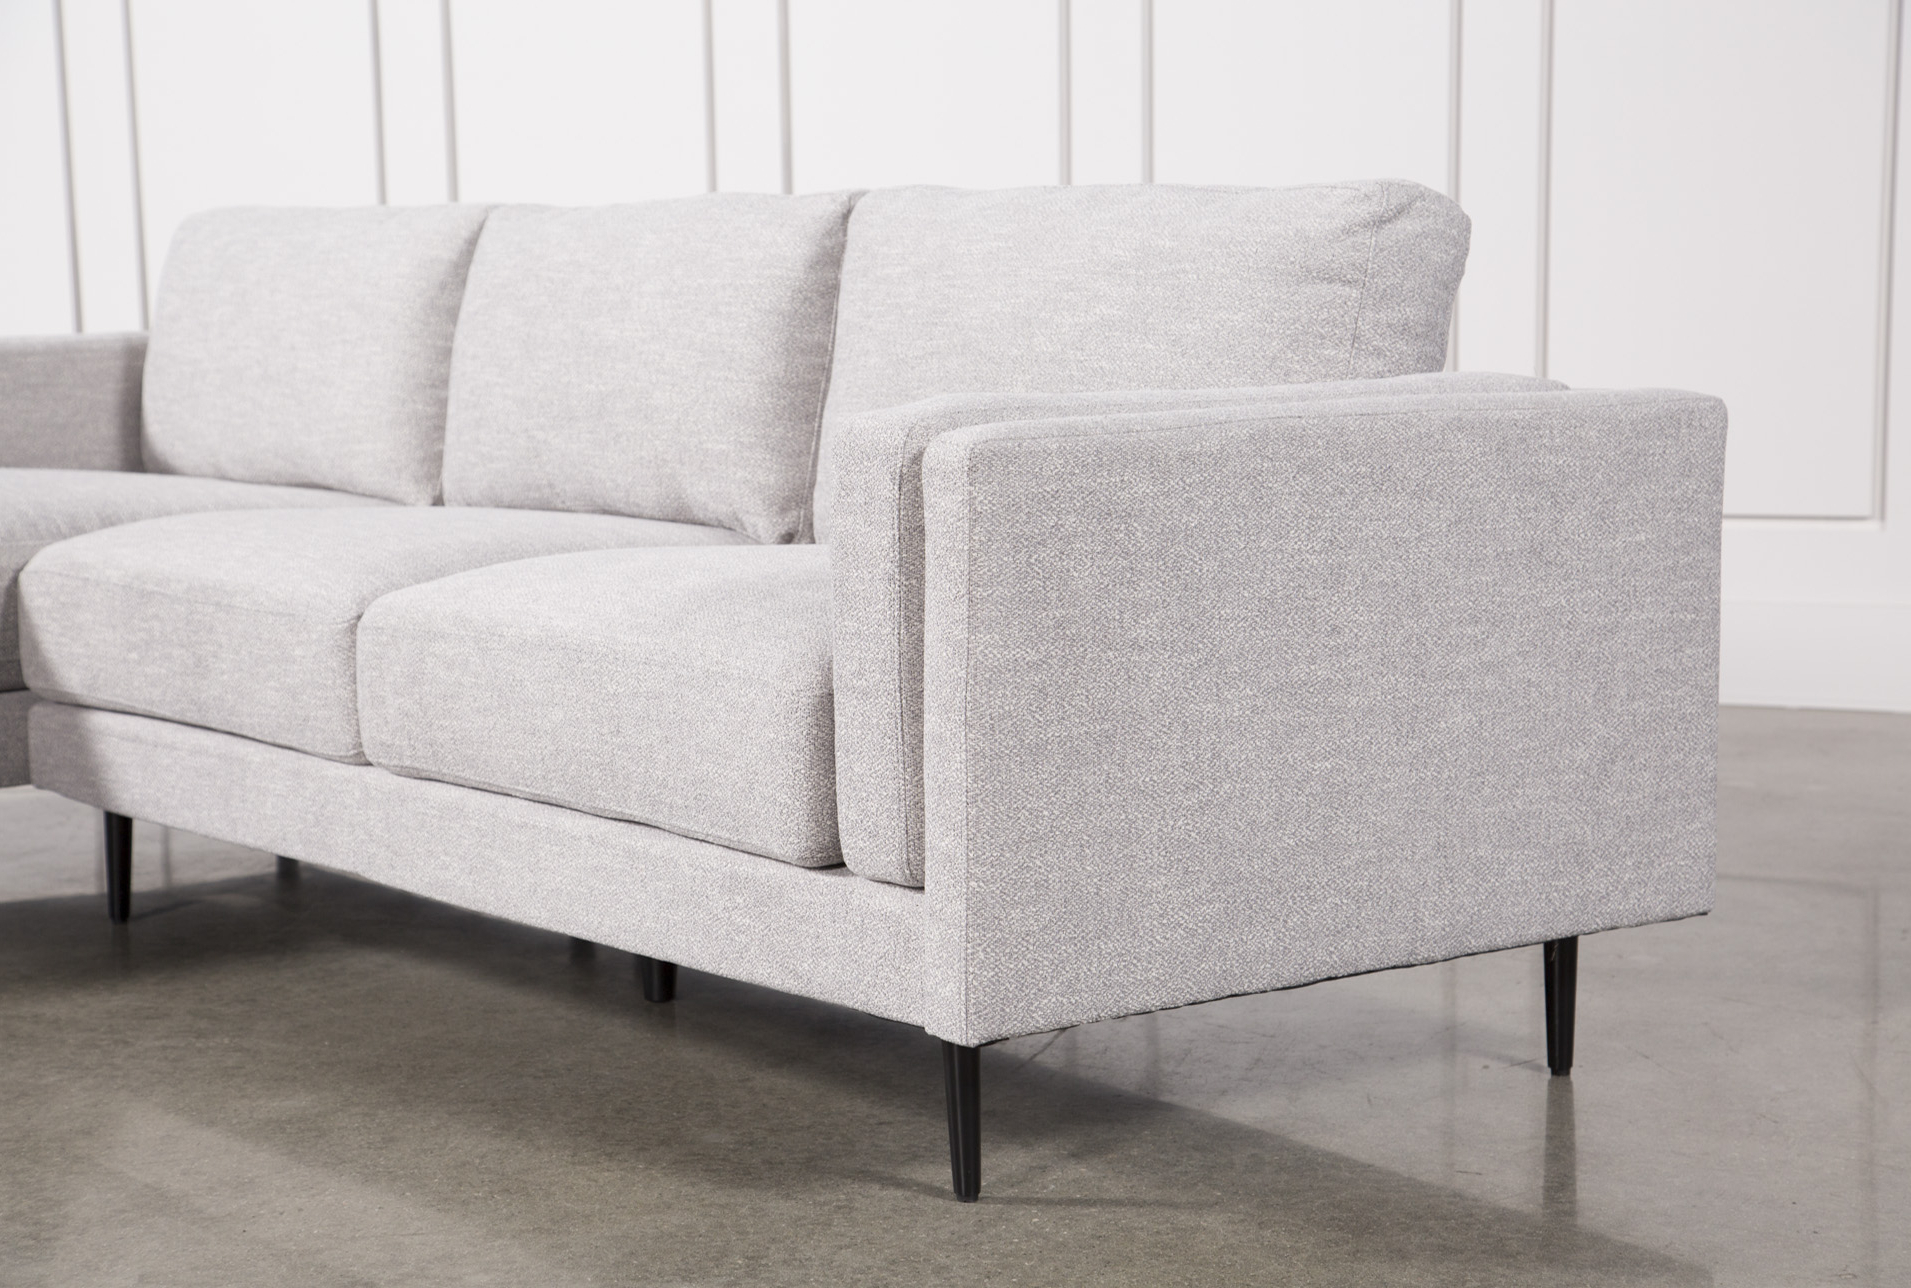 Pinterest Regarding Most Recent Aquarius Light Grey 2 Piece Sectionals With Laf Chaise (View 15 of 20)